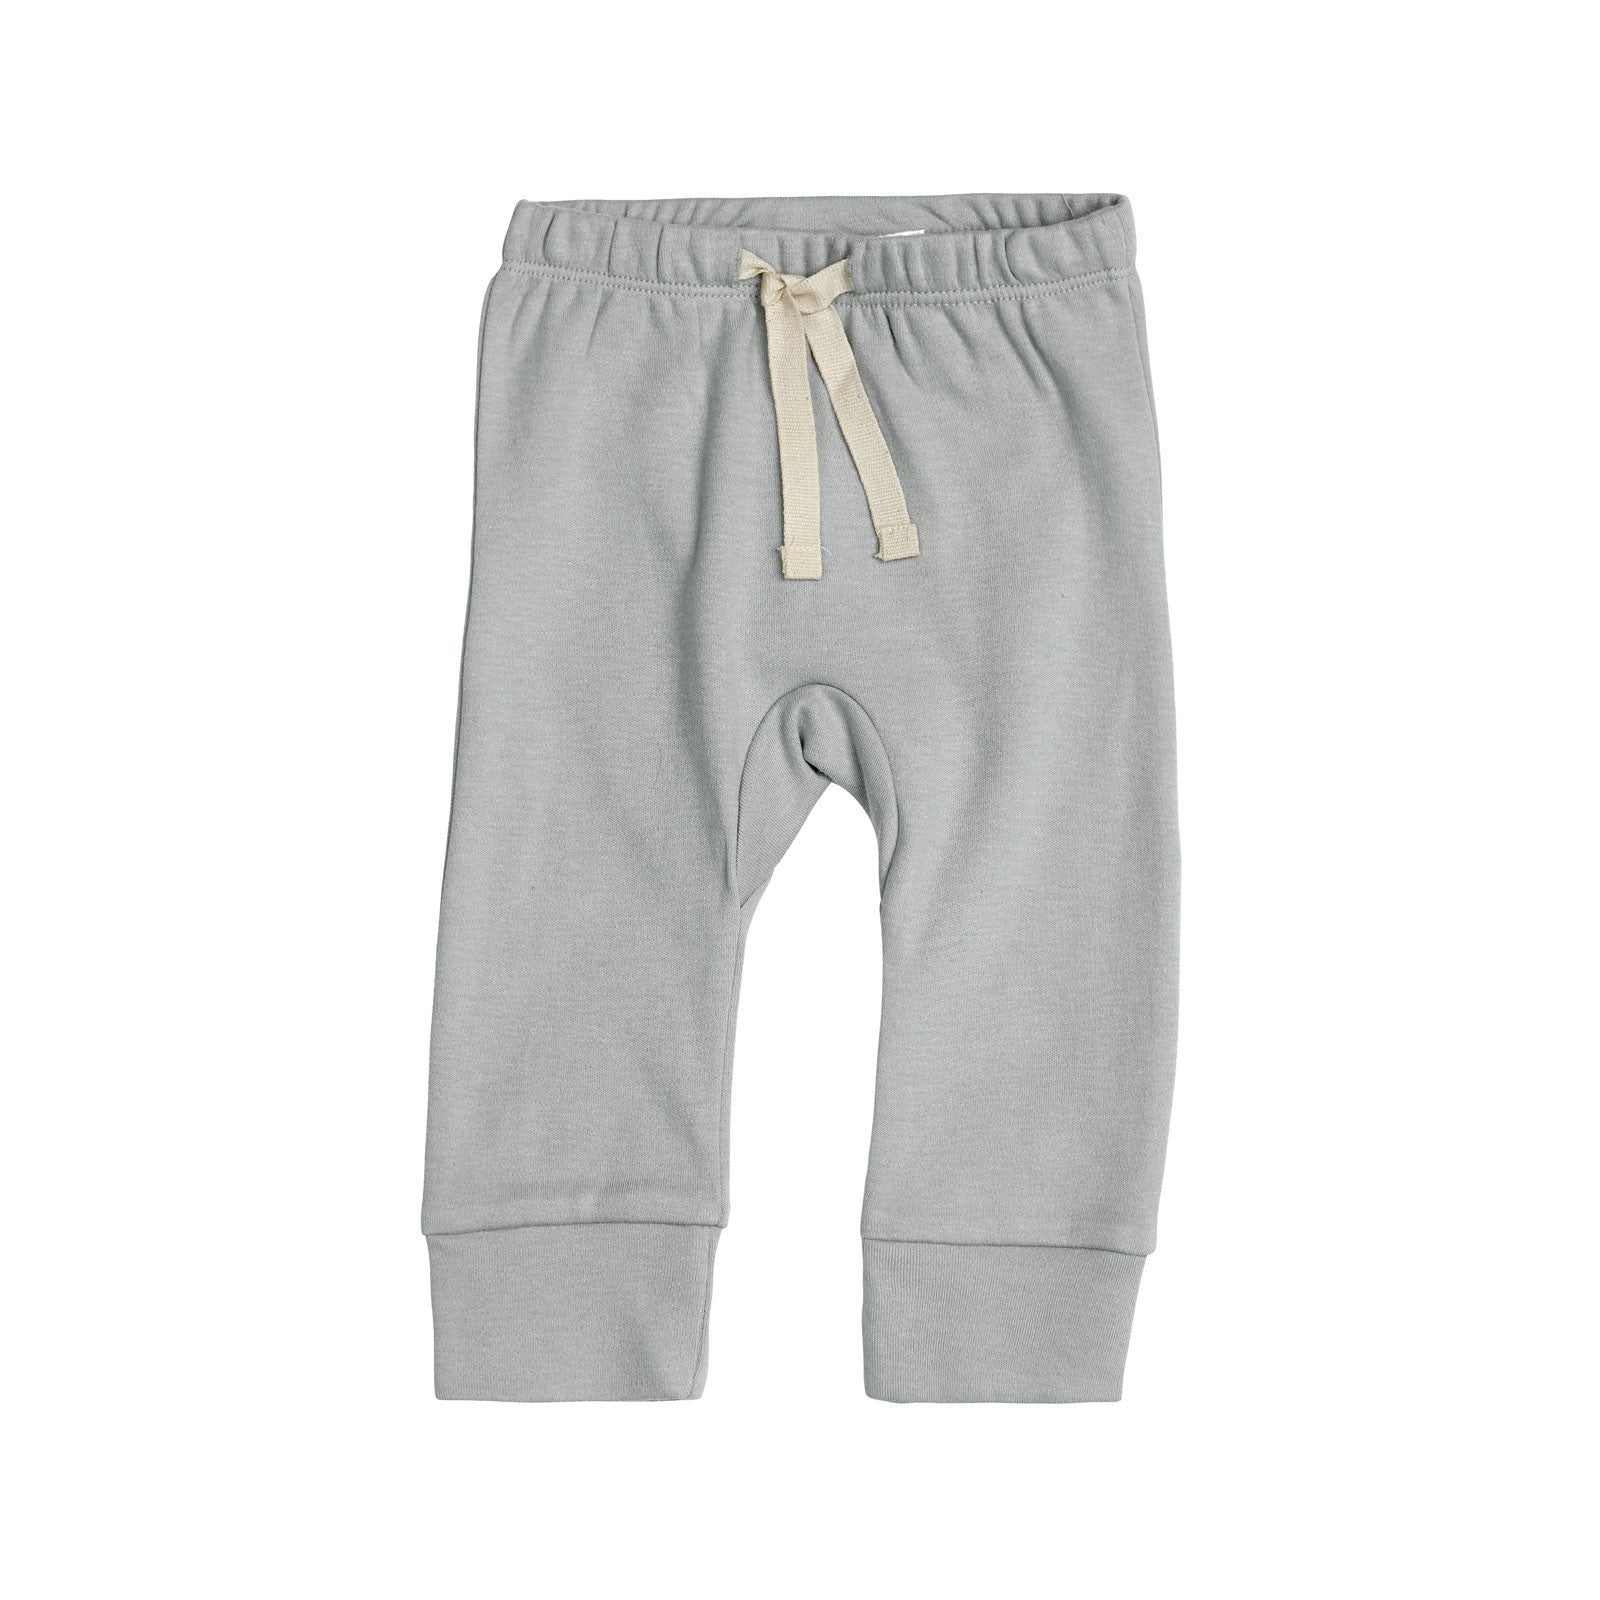 Sapling Child Essentials Heart Pants Sapling Child Baby & Toddler Clothing 3-6M / Dove Grey at Little Earth Nest Eco Shop